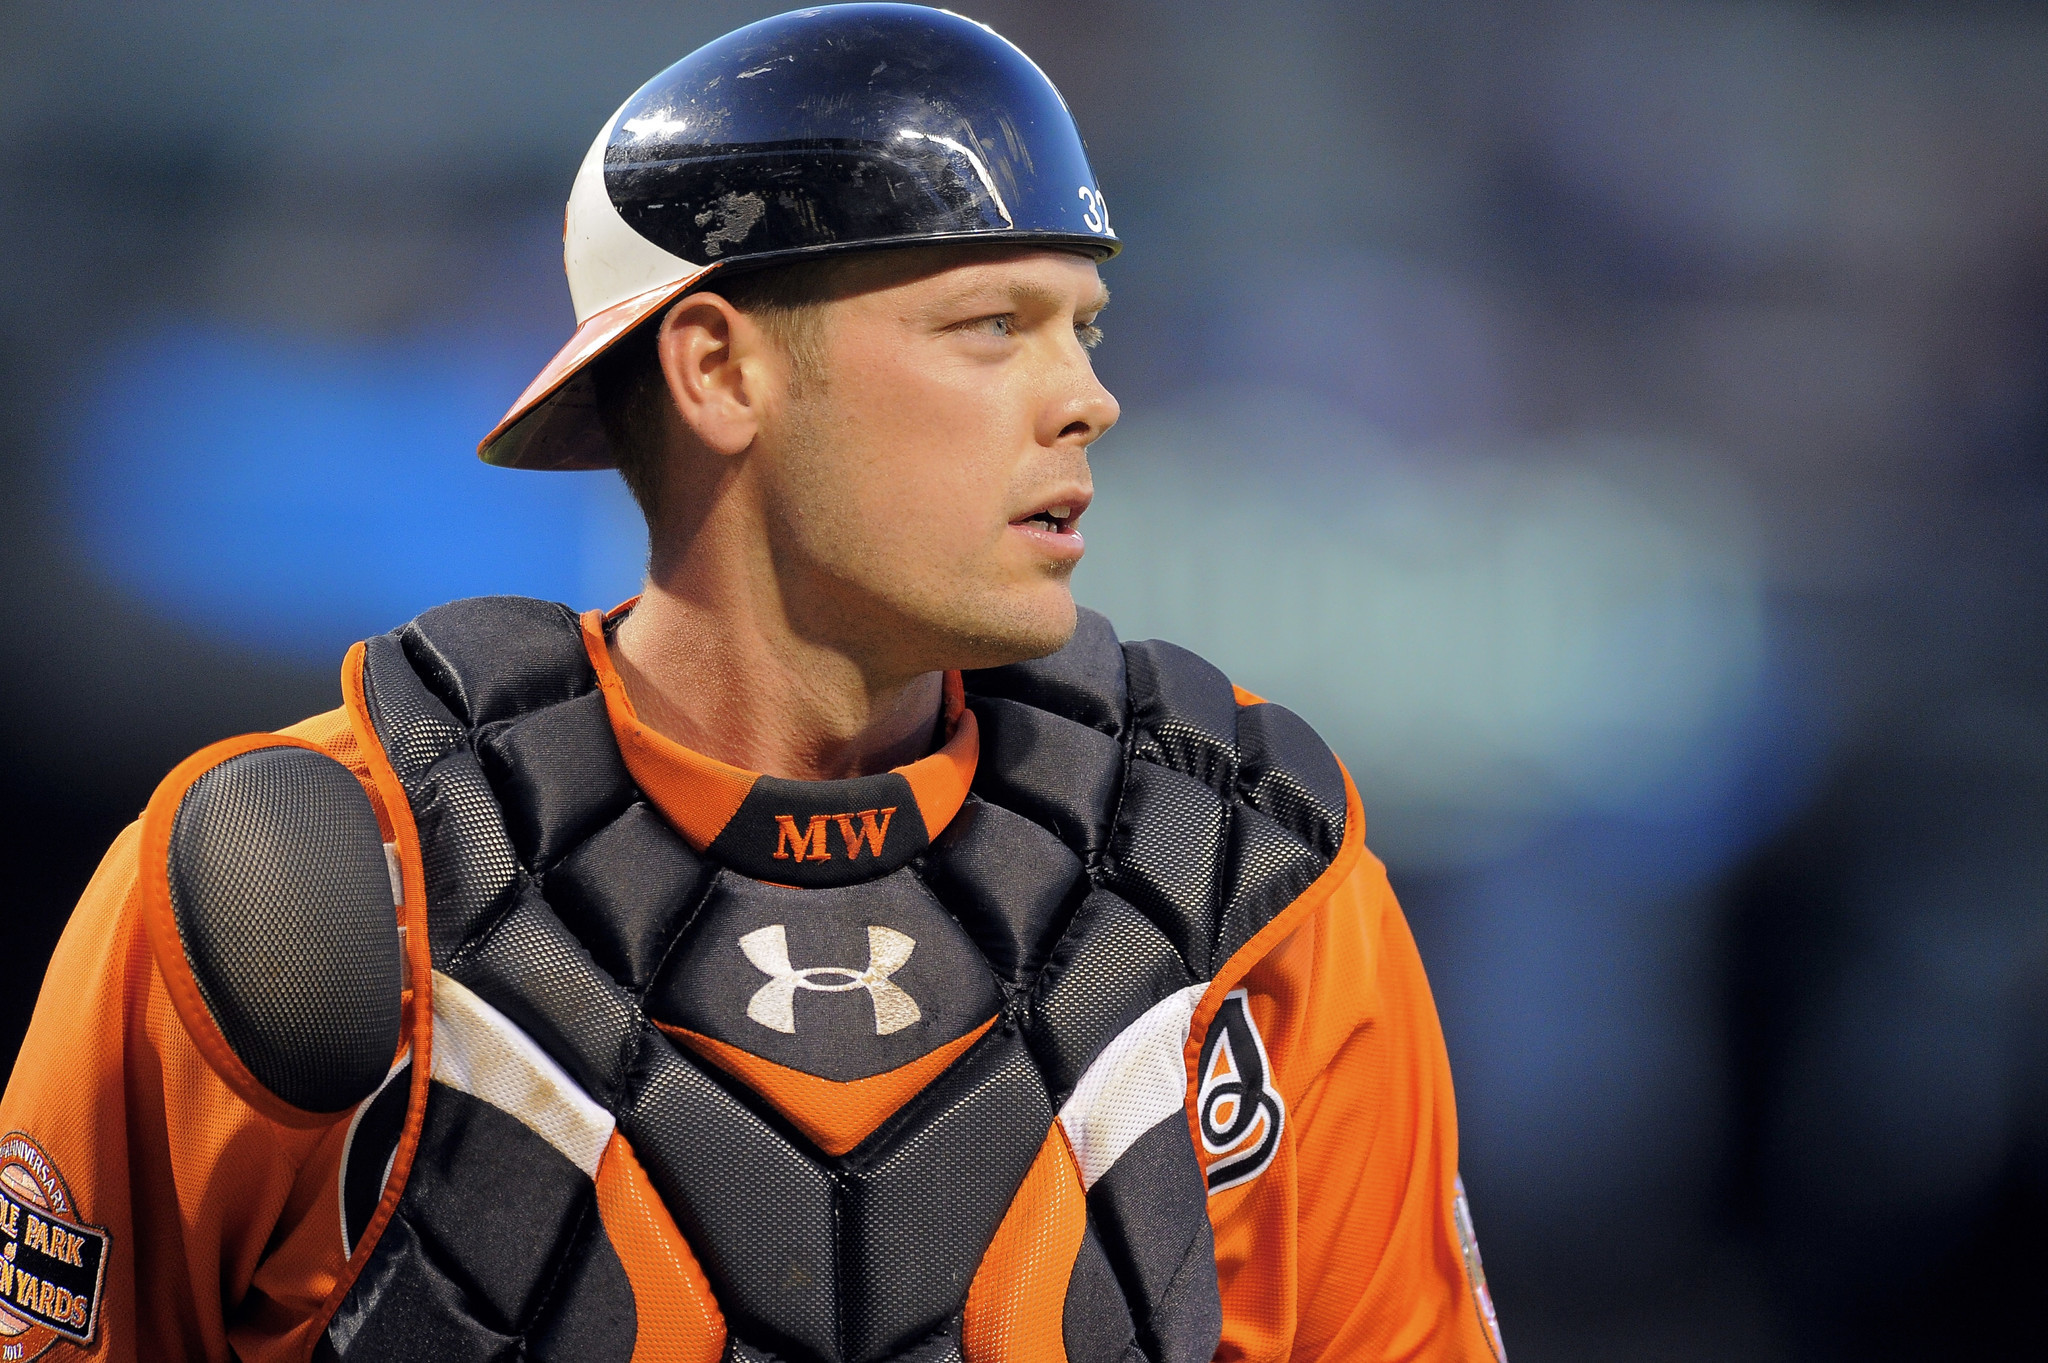 Bal-with-switch-hitting-jesus-gone-a-look-back-at-matt-wieters-orioles-miracles-20170221